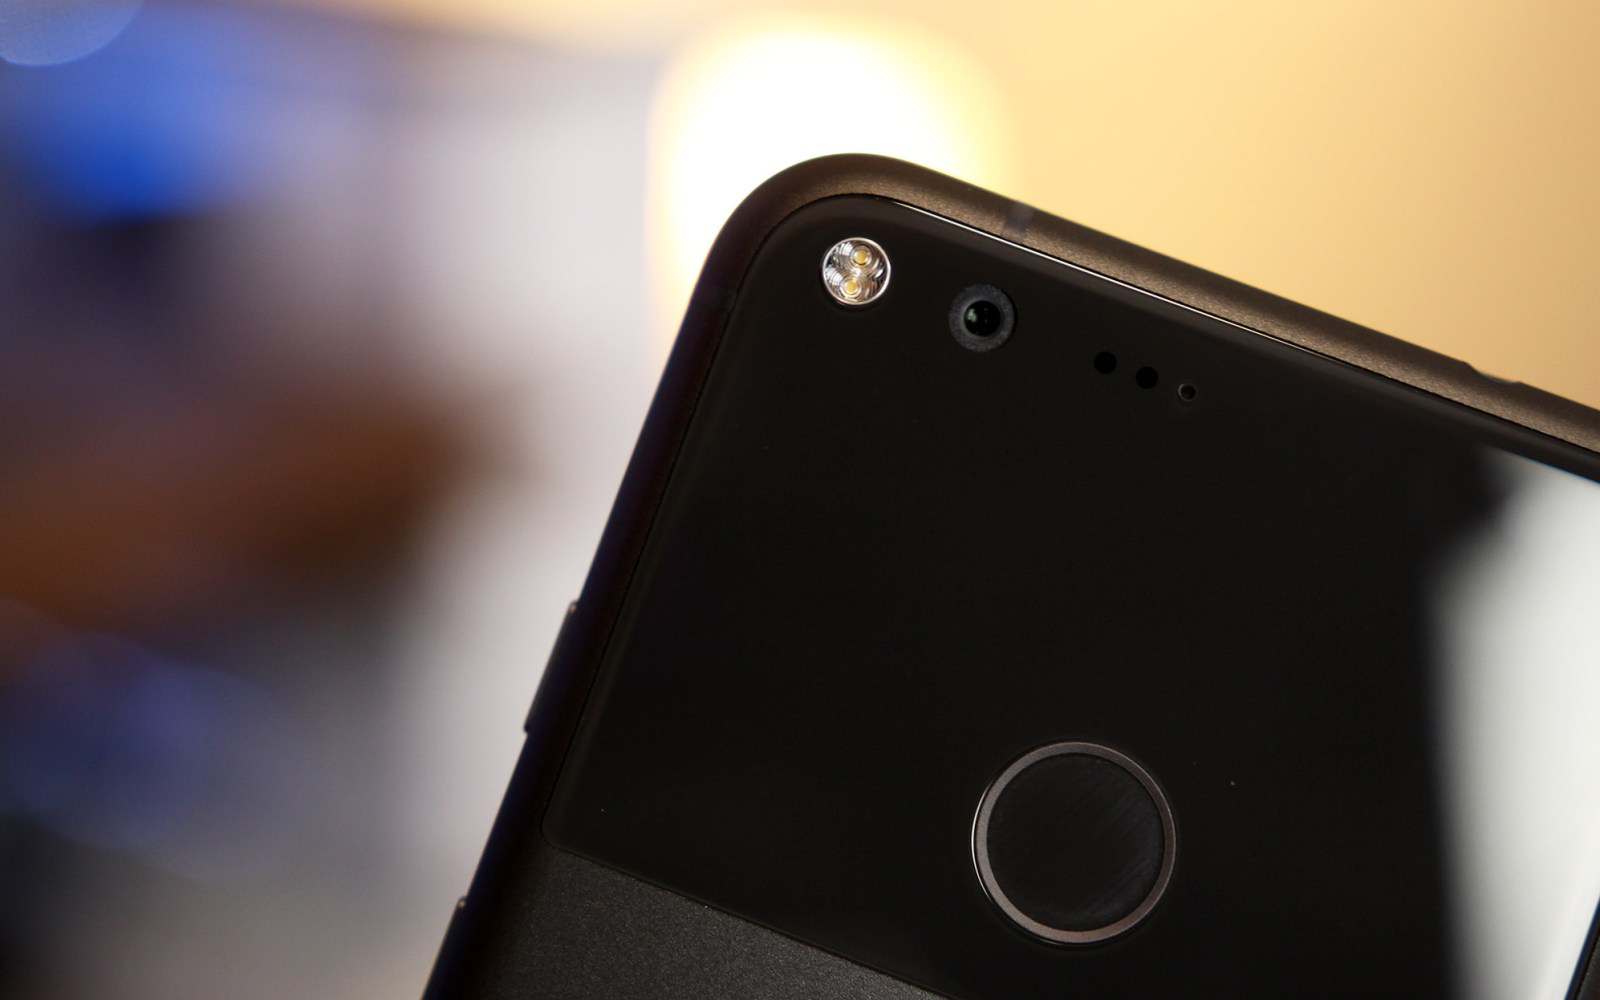 Revised Google Pixel hardware showing up in the wild, might include fix for microphone issue [Update: Not revised hardware]